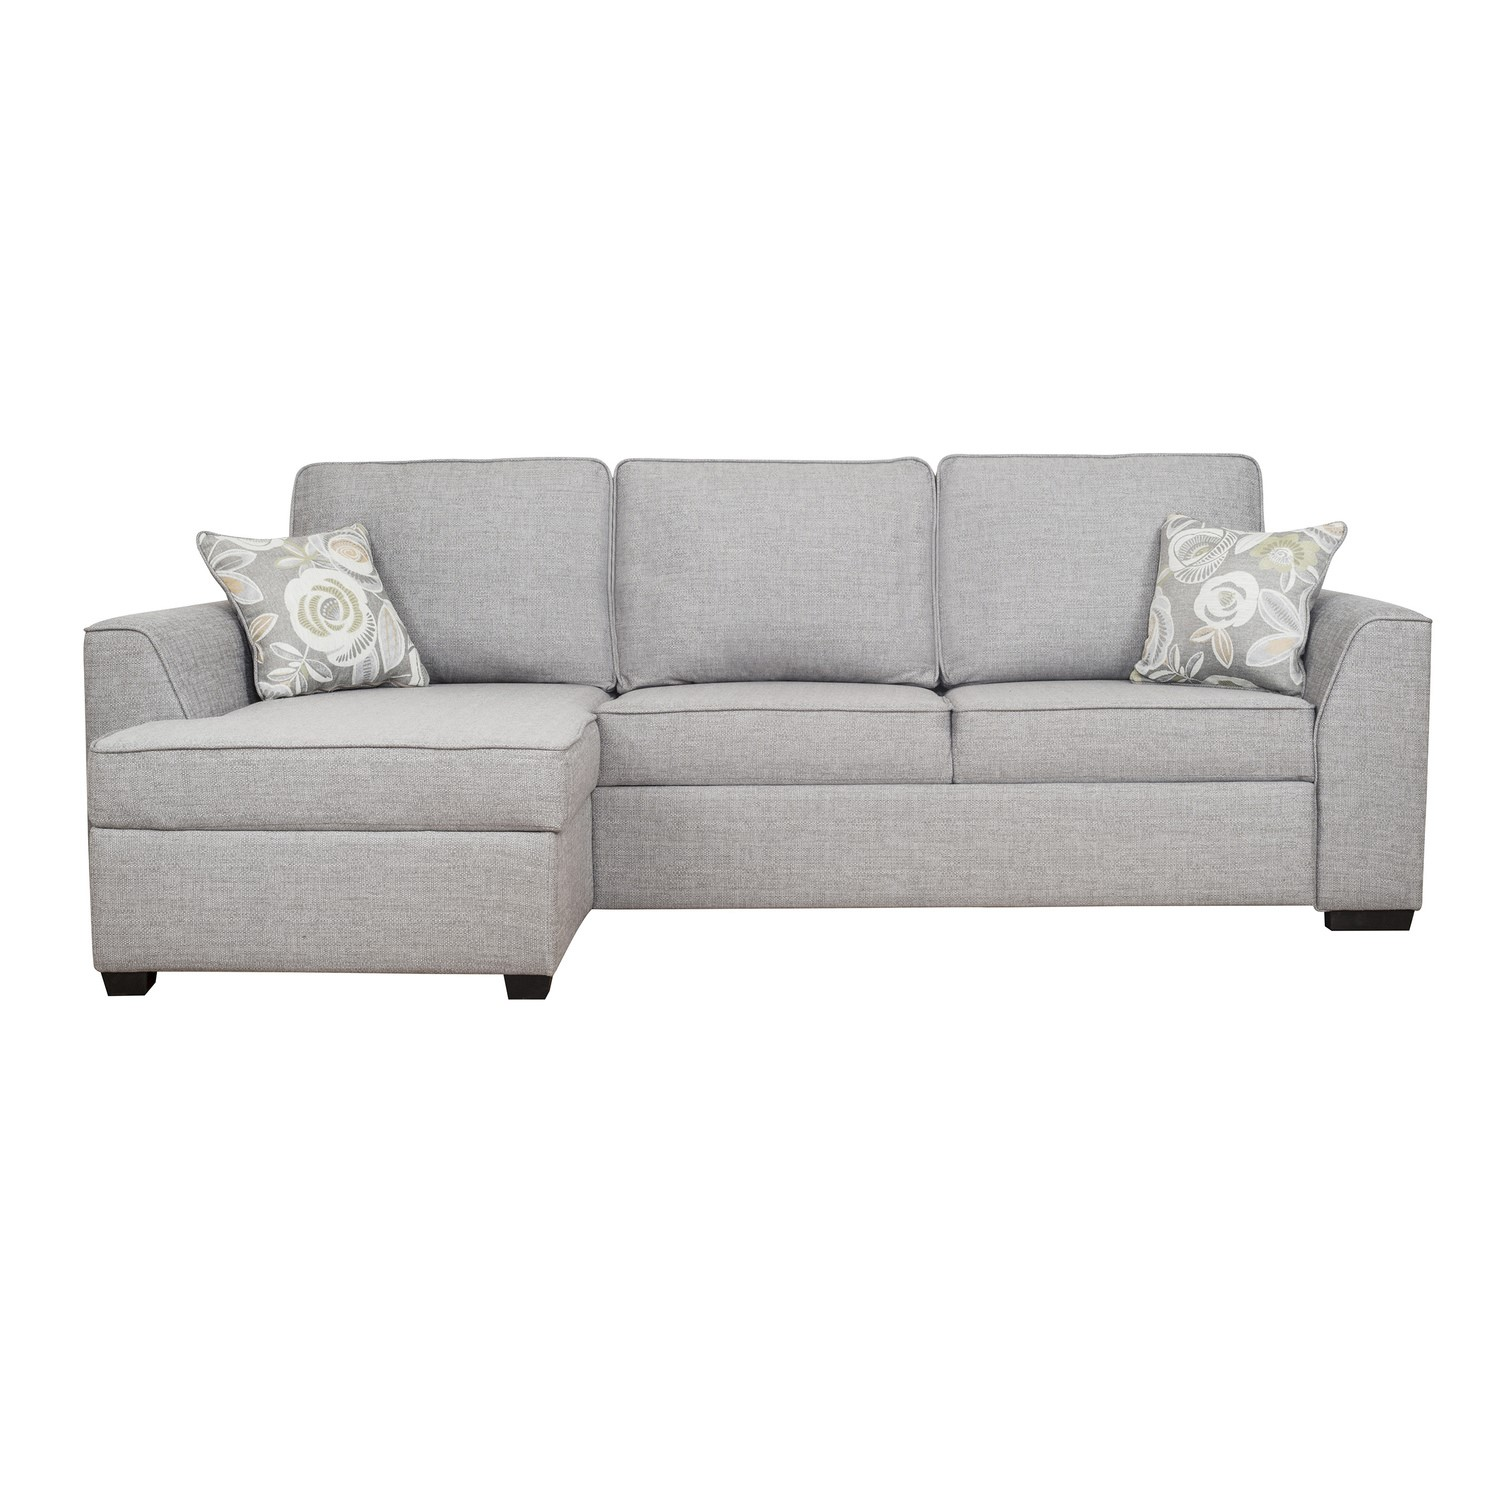 Maddox Corner Sofa Bed